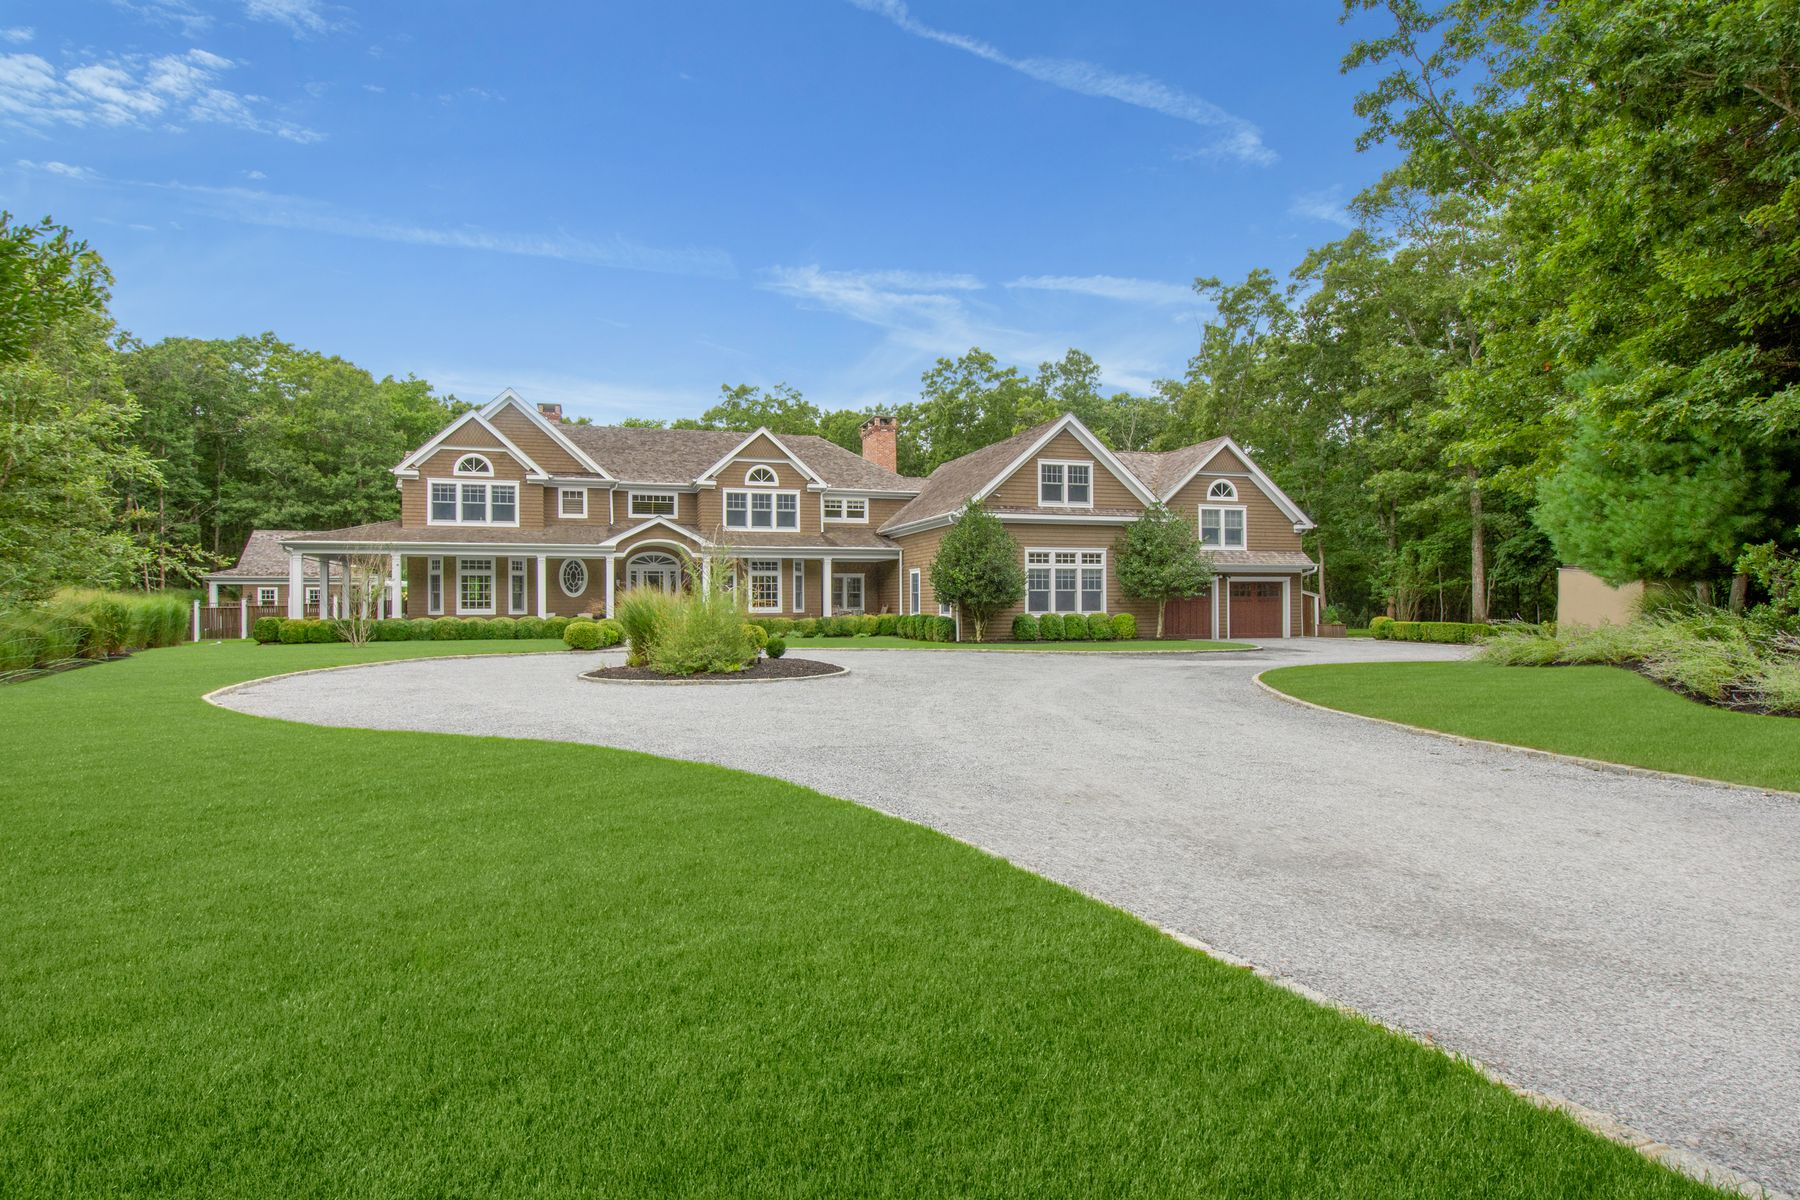 Single Family Homes für Verkauf beim 5-Acres w Tennis Near Sag Harbor Village 129 Stoney Hill Road, Sag Harbor, New York 11963 Vereinigte Staaten